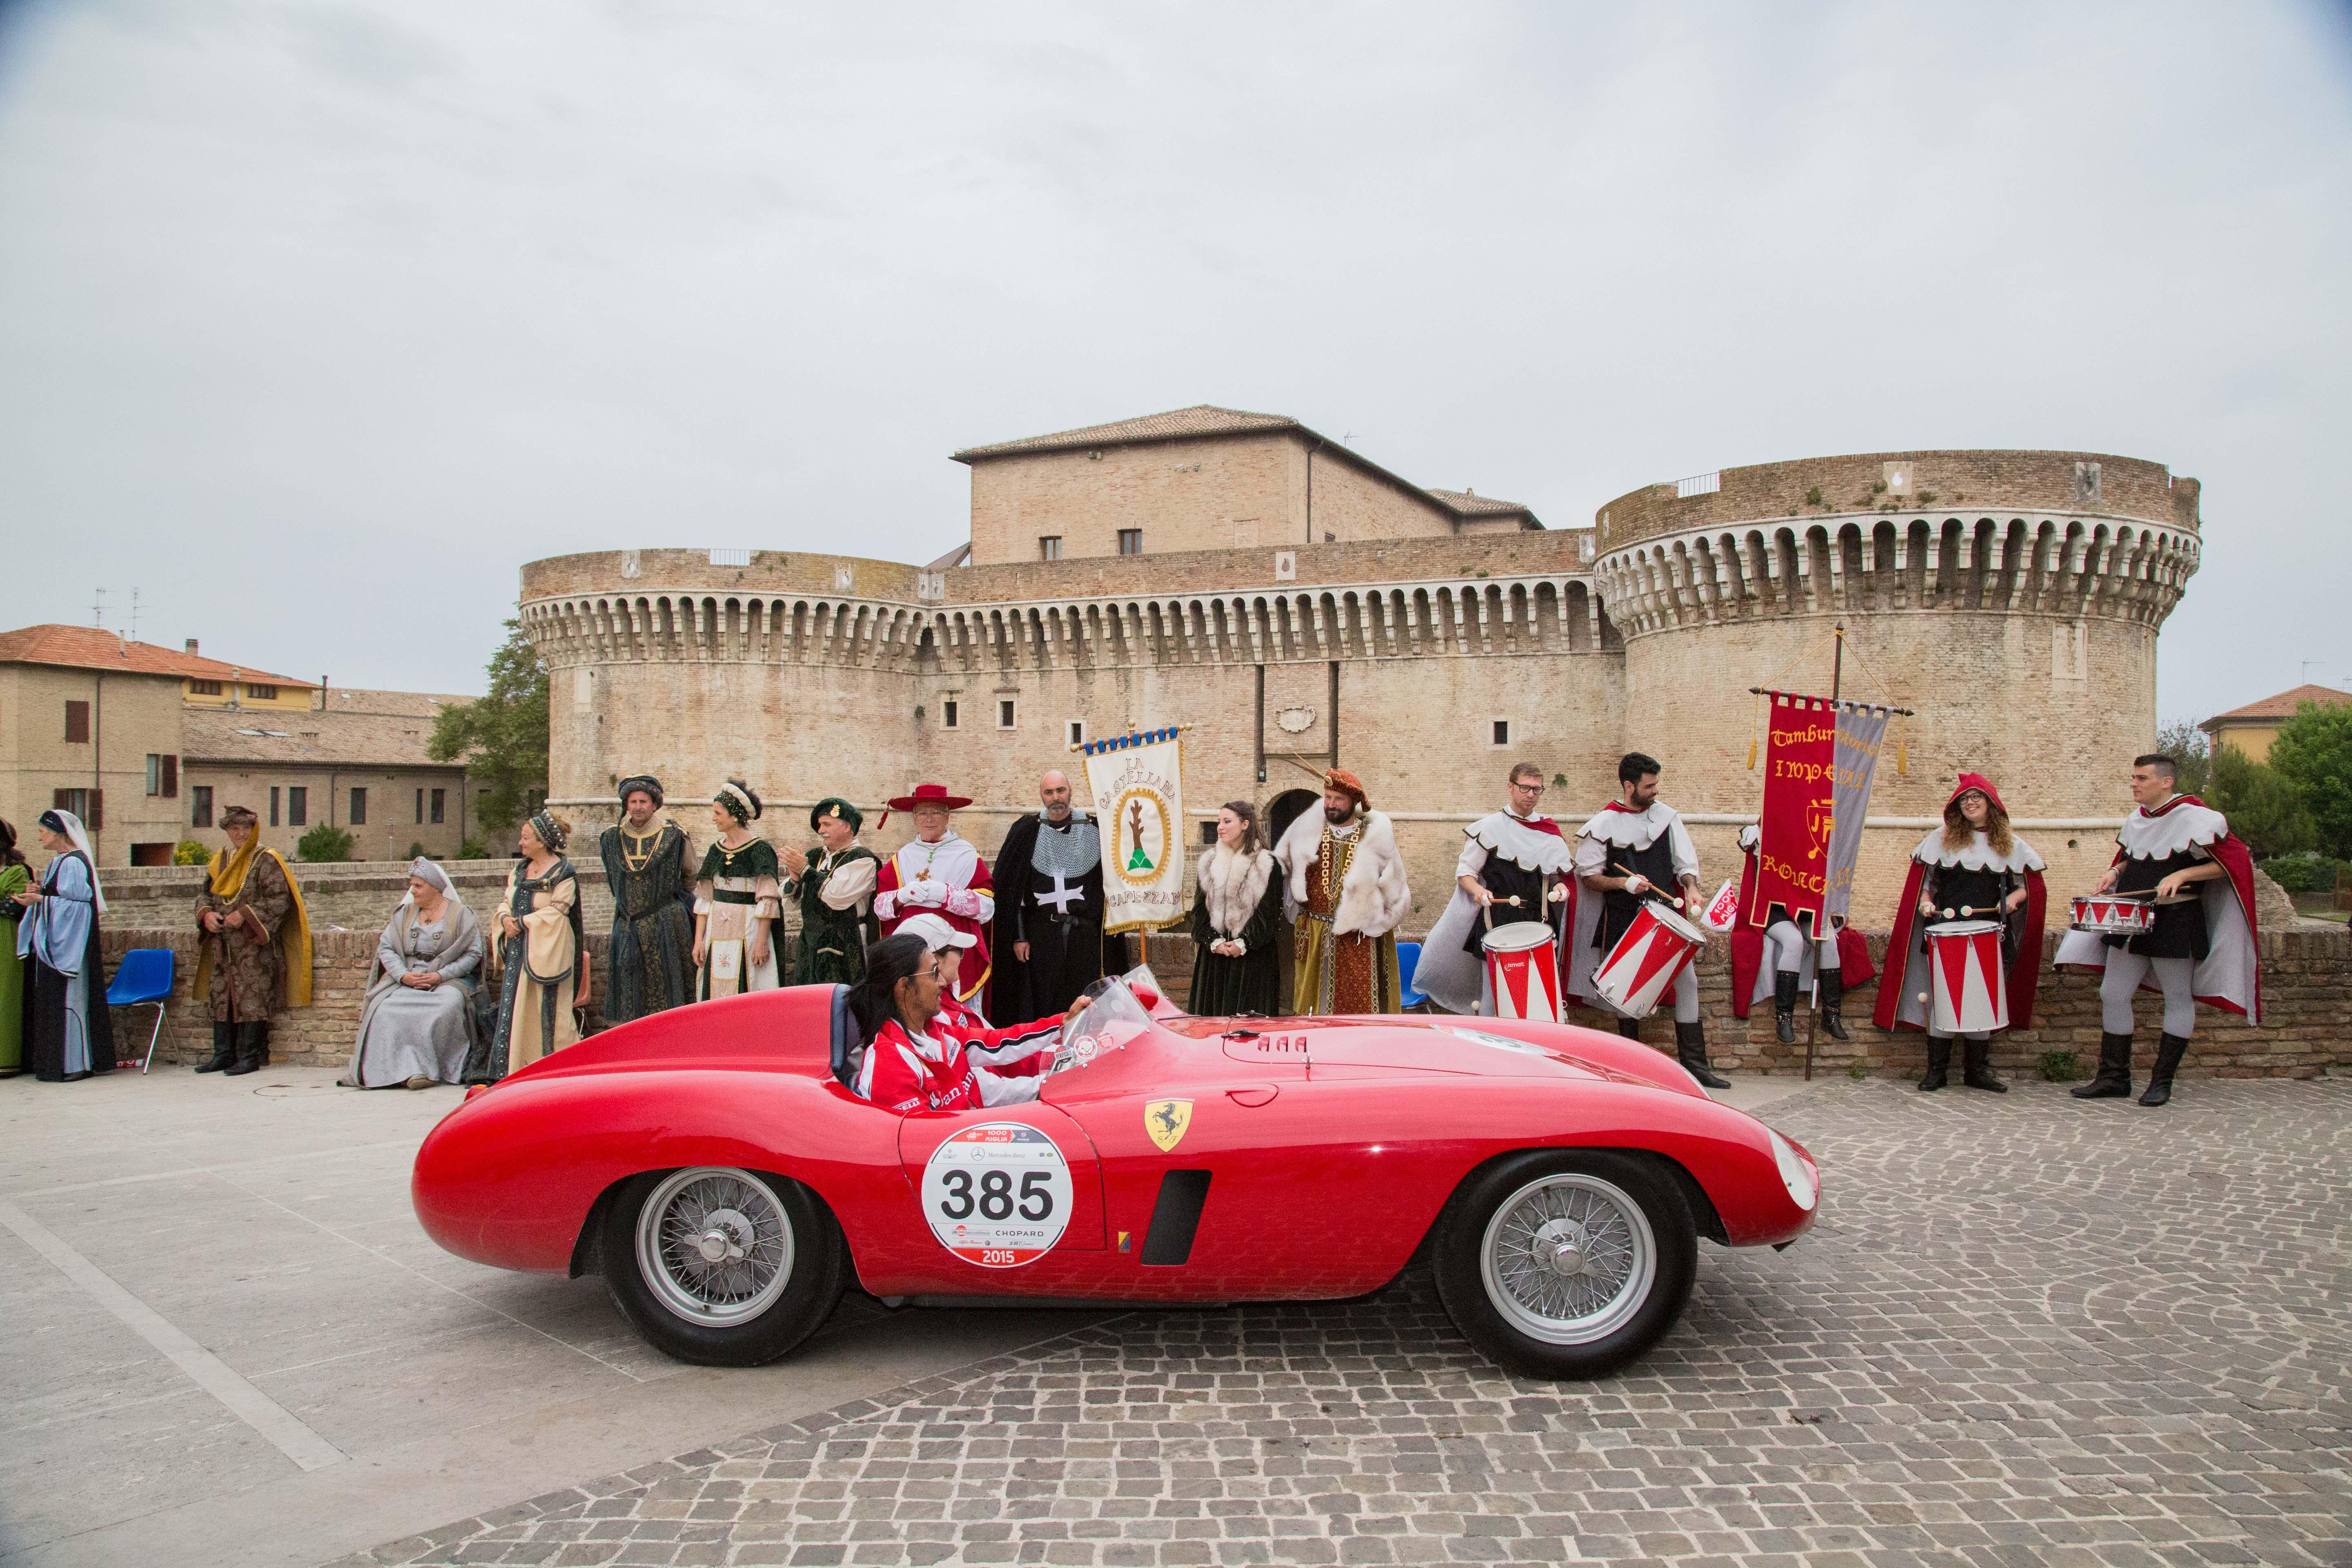 How to get a place on the Mille Miglia